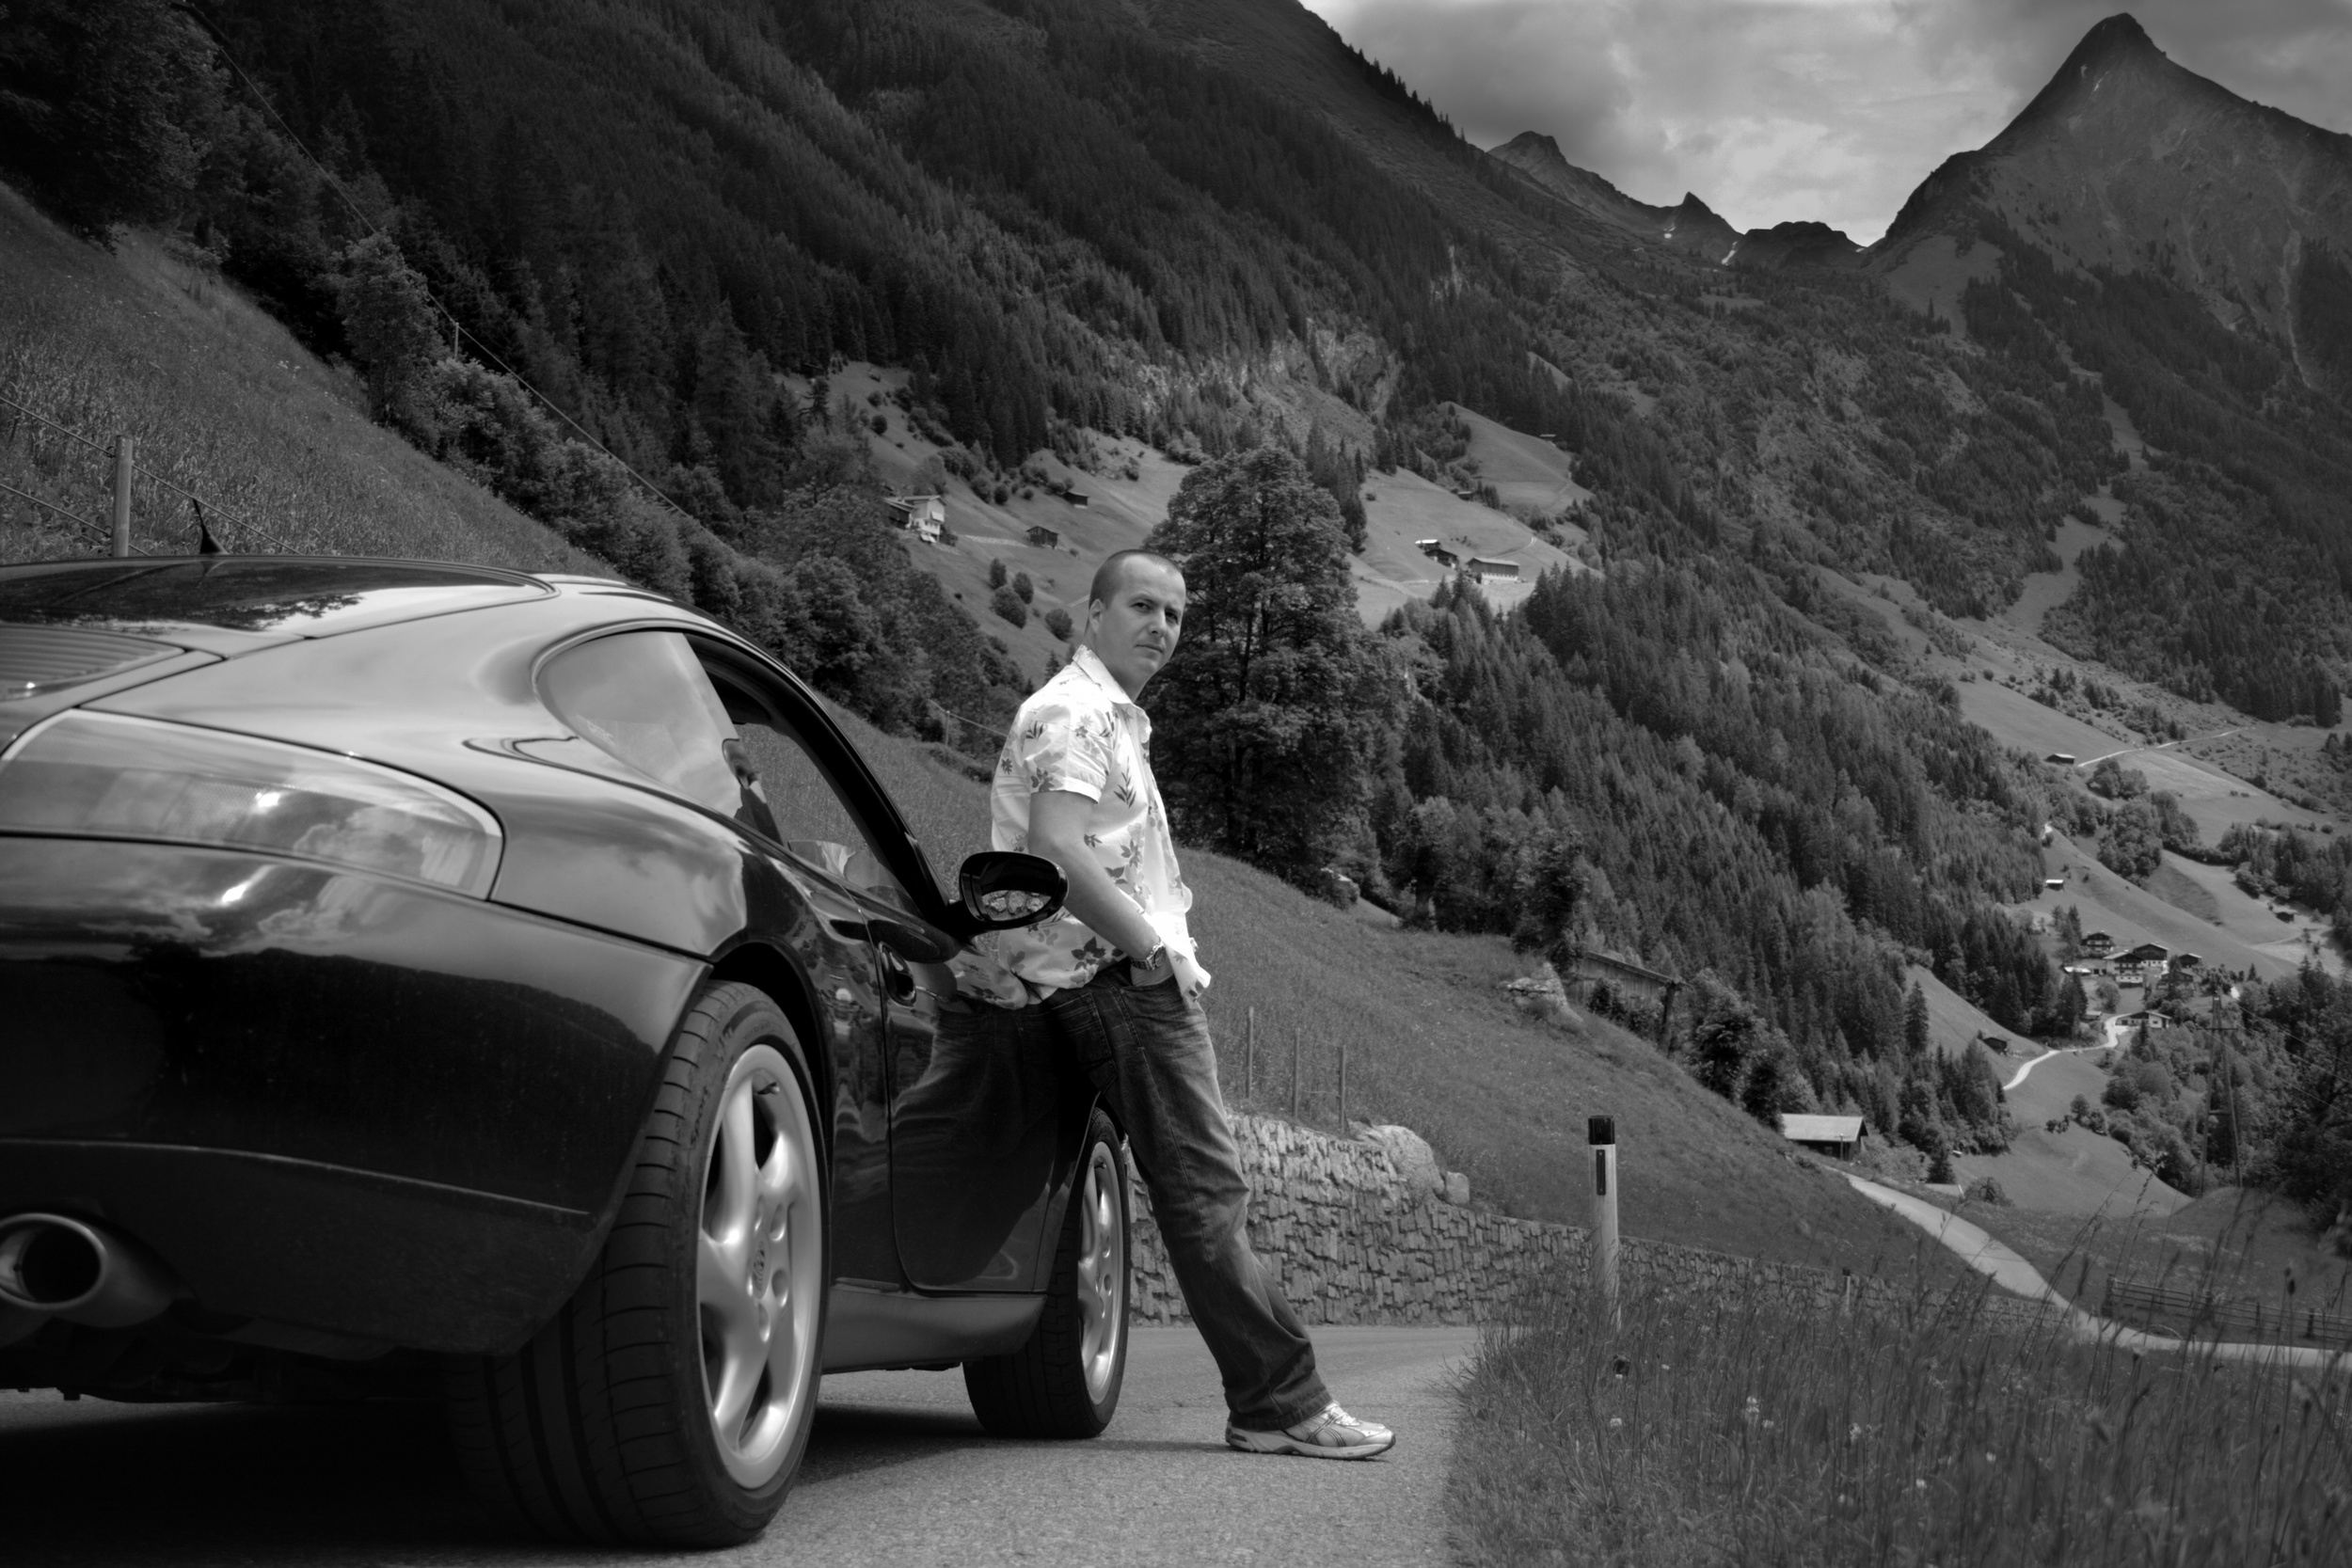 porsche in the mountains